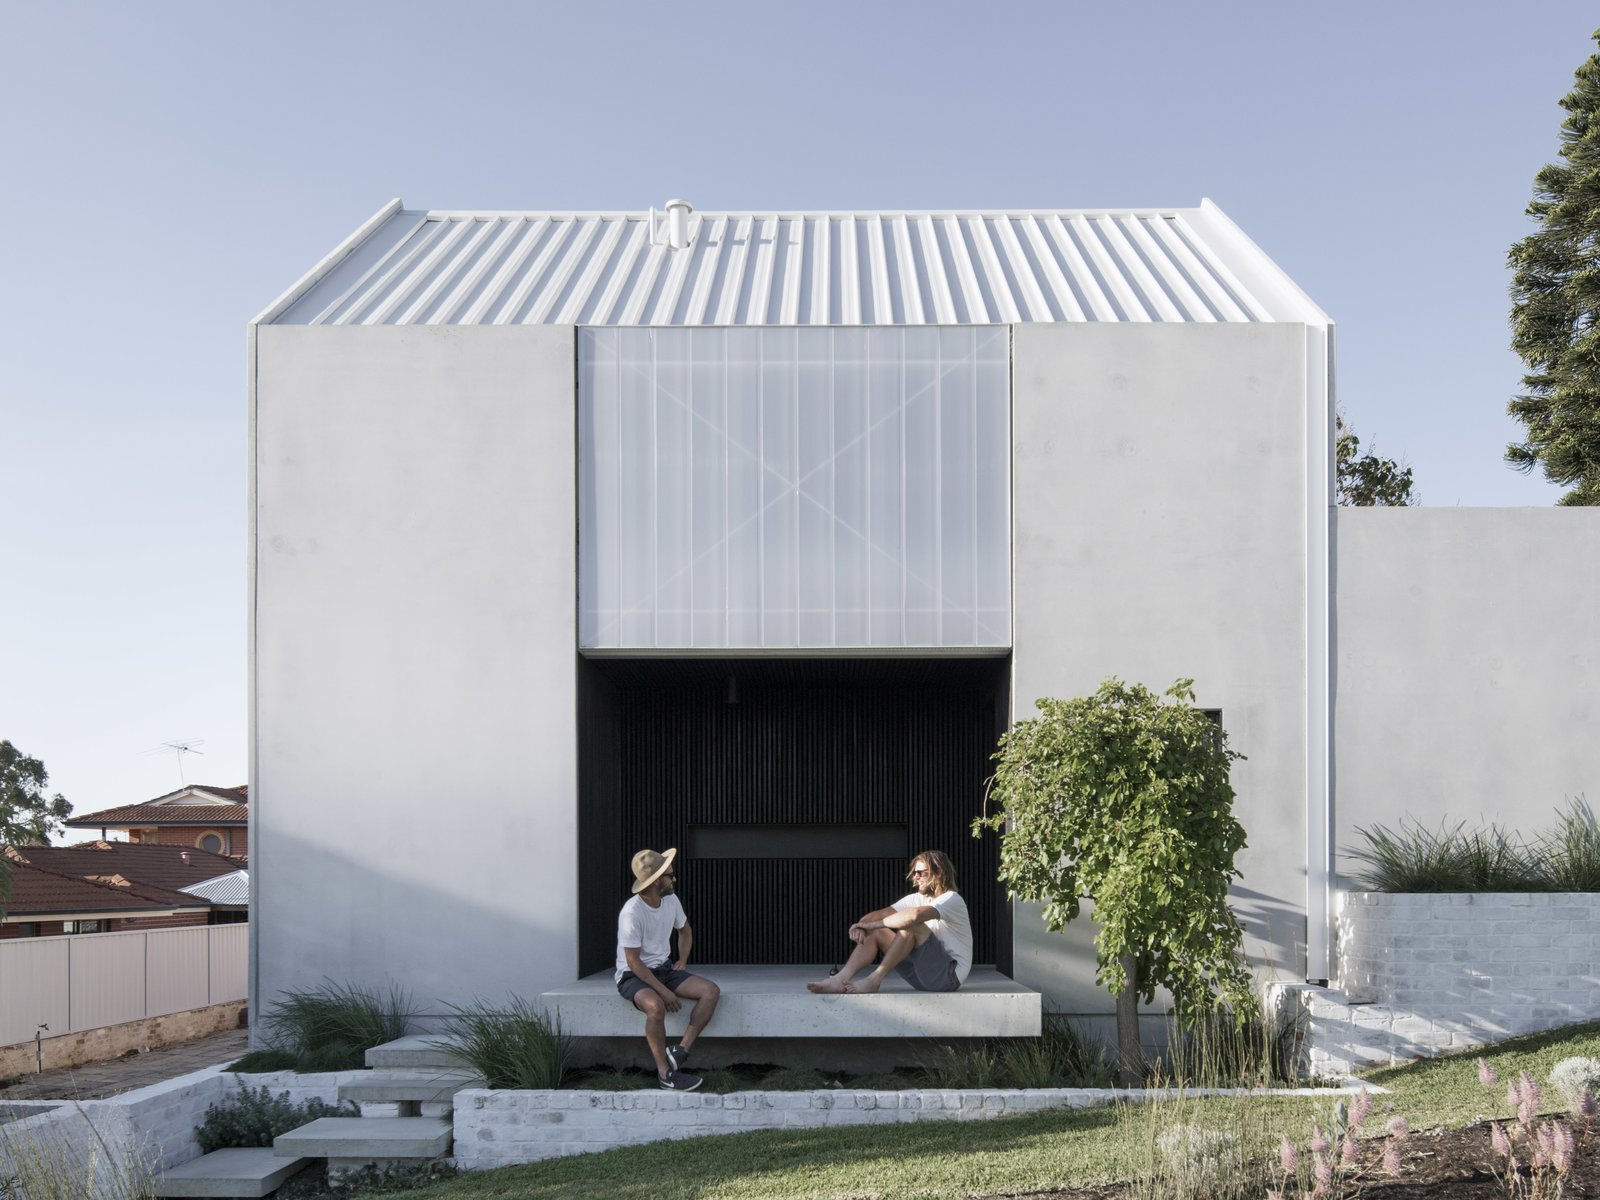 Concrete Walls For Homes : A carbon neutral concrete house is an exemplary infill in western